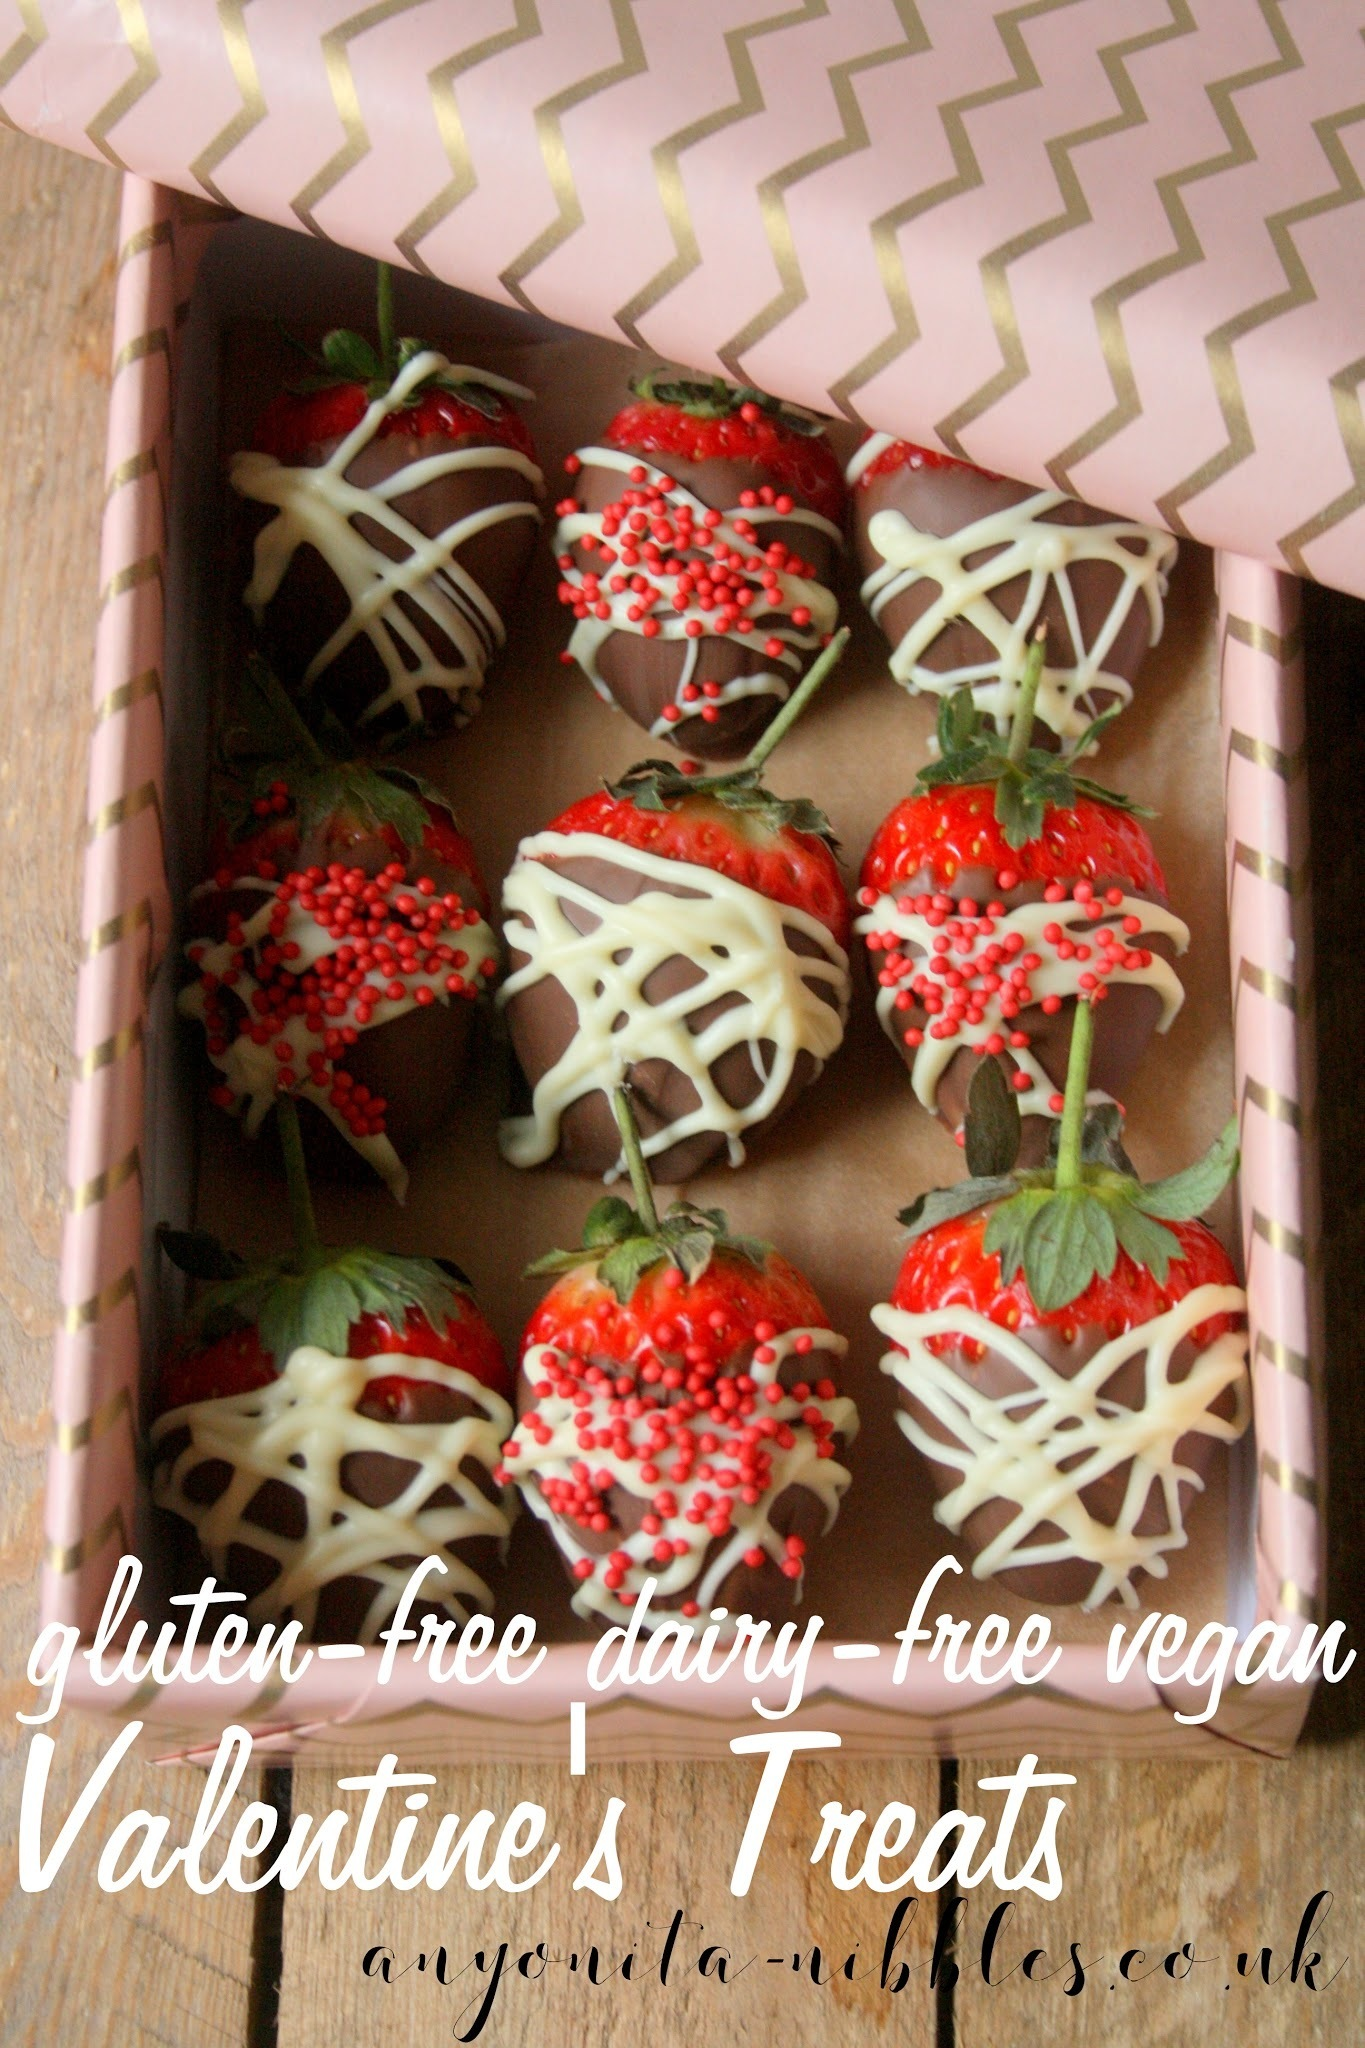 Gluten Free & Vegan Chocolate Strawberries for Valentine's Day